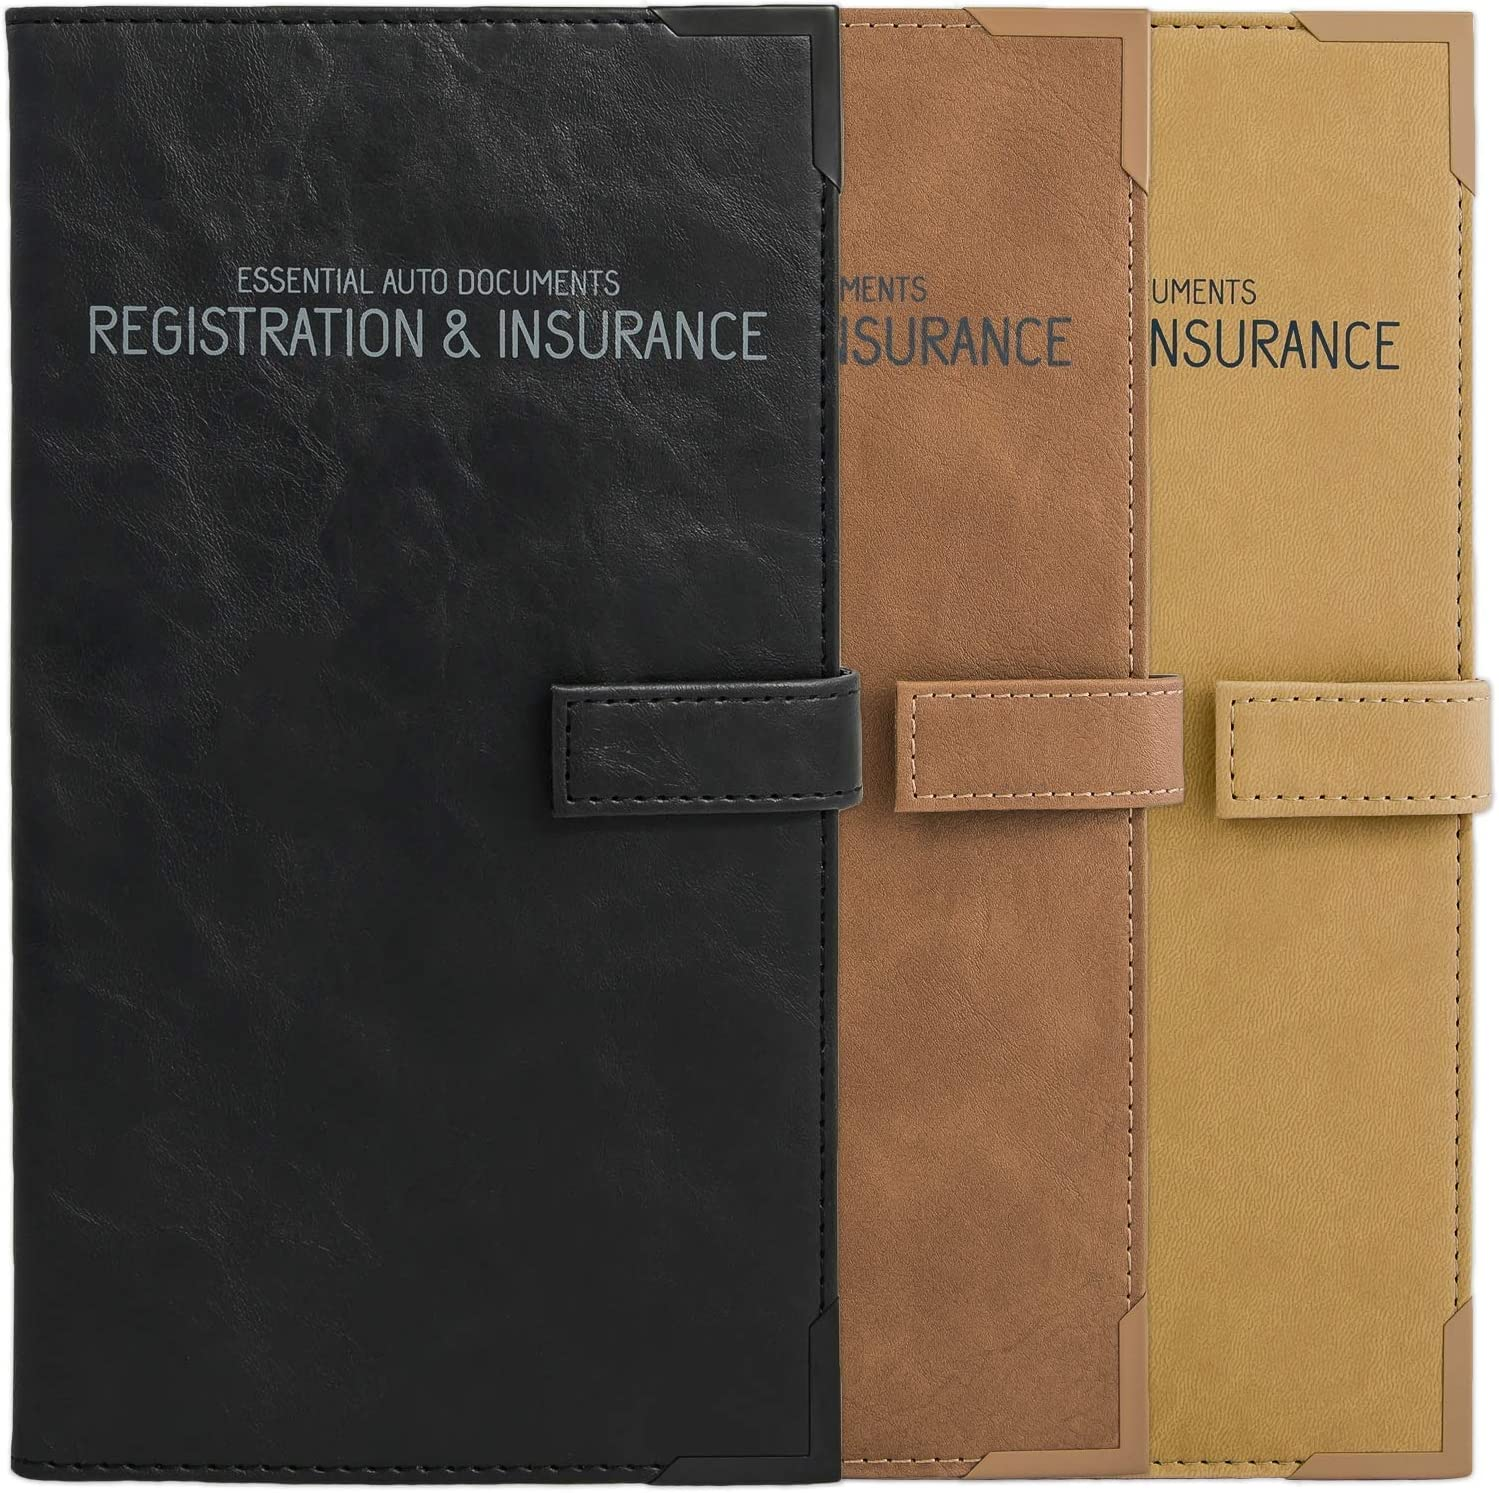 Auto Insurance and Registration Card - Vehicle Rapid rise Glove Import Box Holder